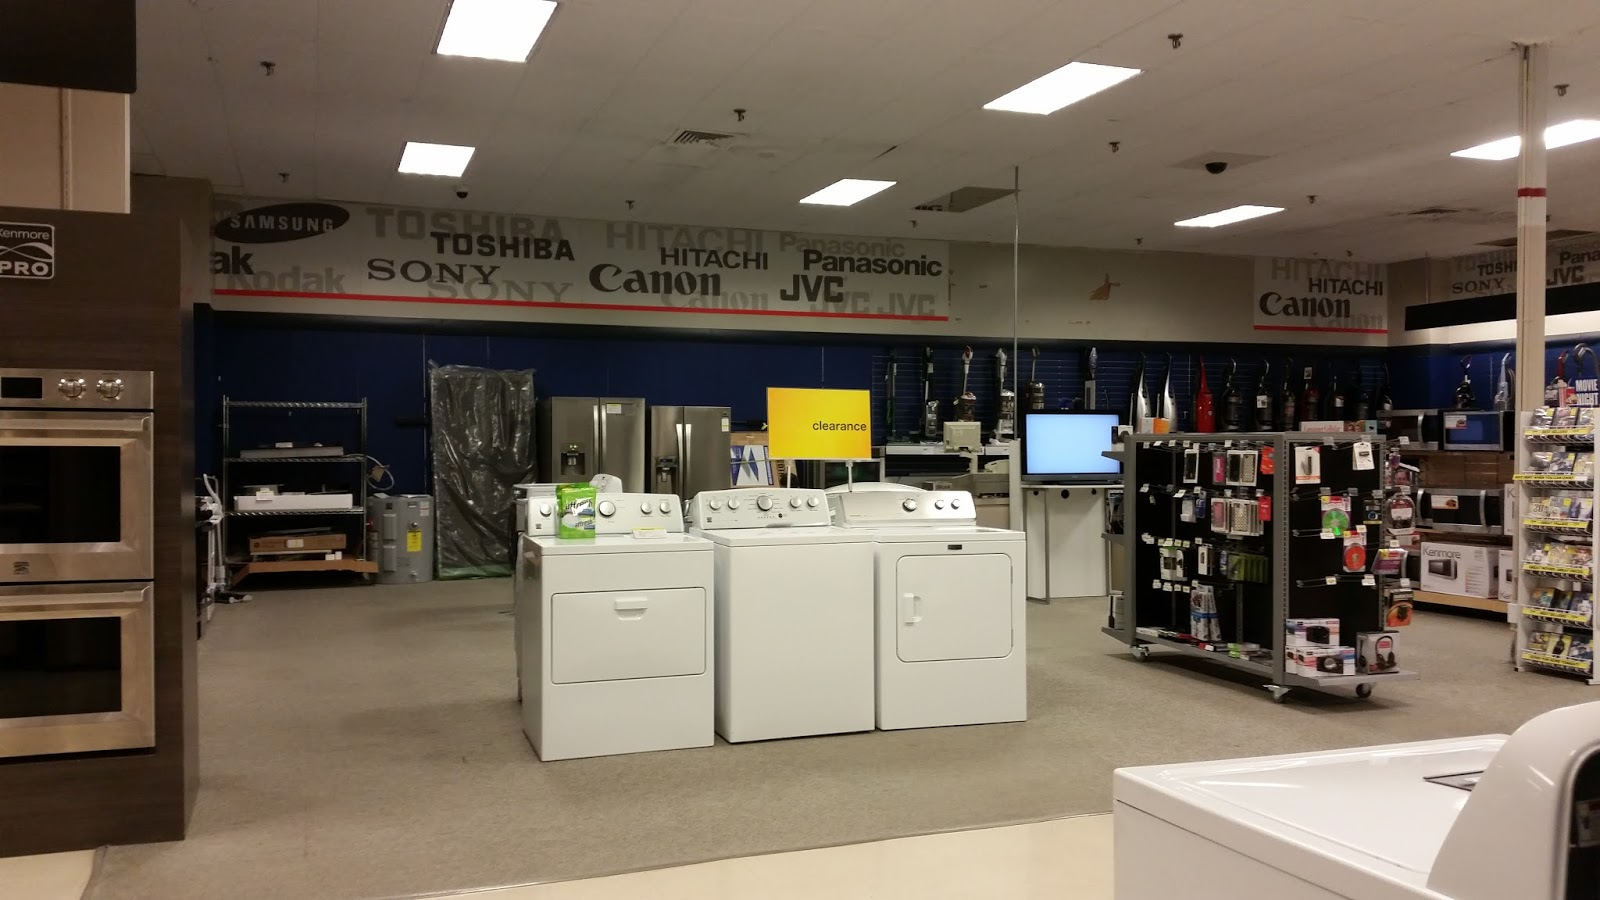 The Former Electronics Department Was Filled With Odds And Ends. A Small  Selection Of Electronics Still Remained, But Was Later Moved A Few Feet  Over Into ...